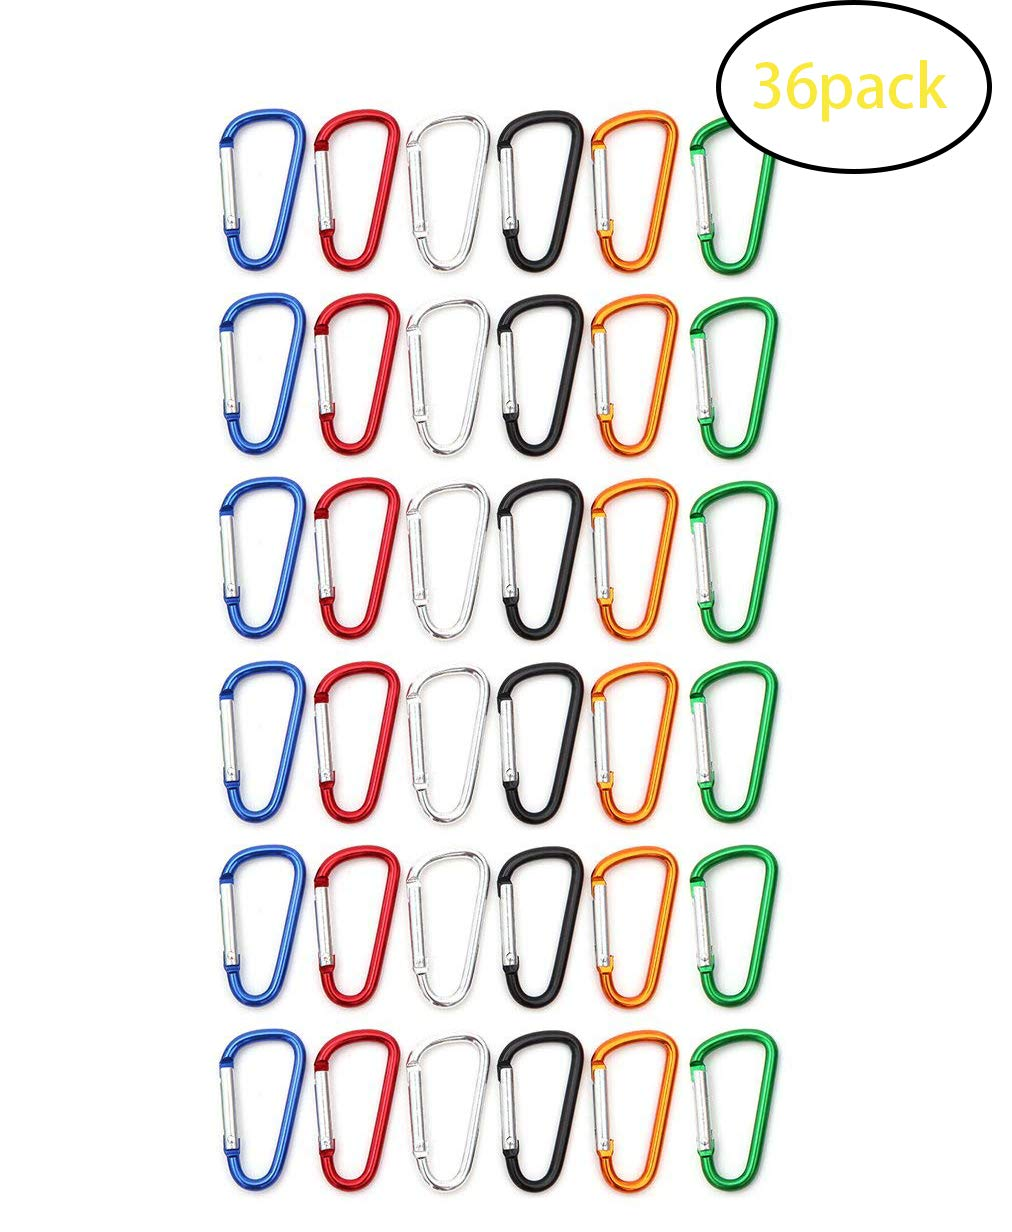 SBYURE Pack of 36 Aluminum D-Ring Spring Loaded, Small Keychain Carabiner Clip, Mini Lock Snap Hooks for Outdoor Camping, Travling and Camping, Assorted Colors